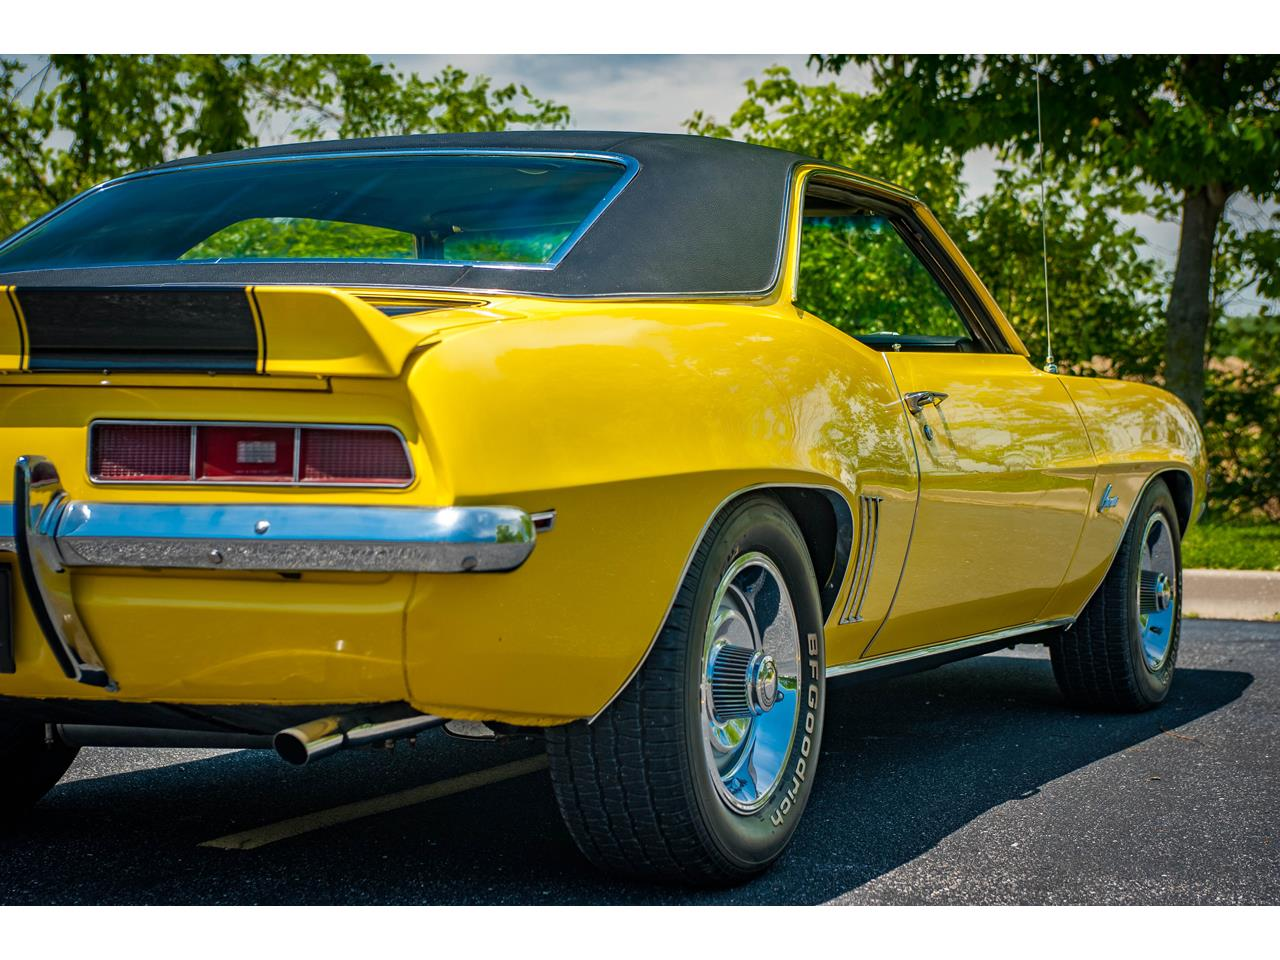 Large Picture of Classic '69 Chevrolet Camaro located in O'Fallon Illinois Offered by Gateway Classic Cars - St. Louis - QB9B